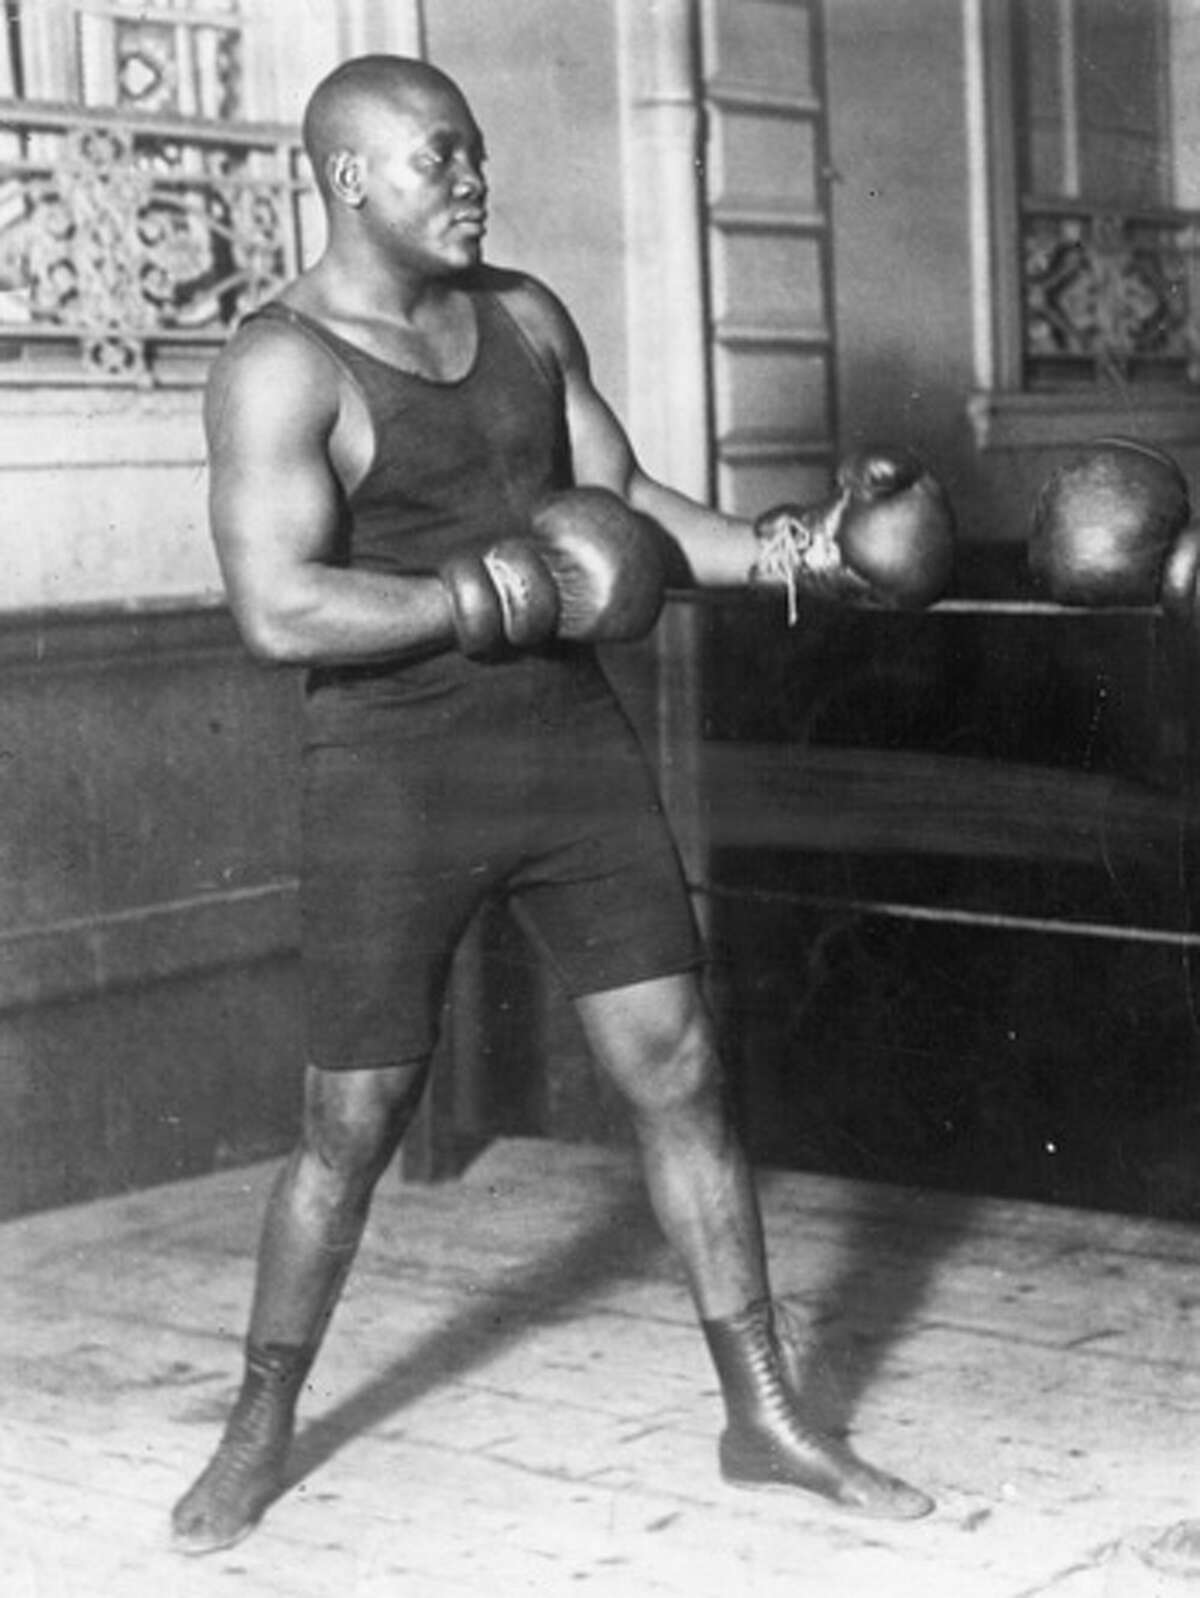 American heavyweight boxer Jack Johnson (and Galveston native) is shown sparring. Johnson's legacy was recently honored with a statue in his hometown.